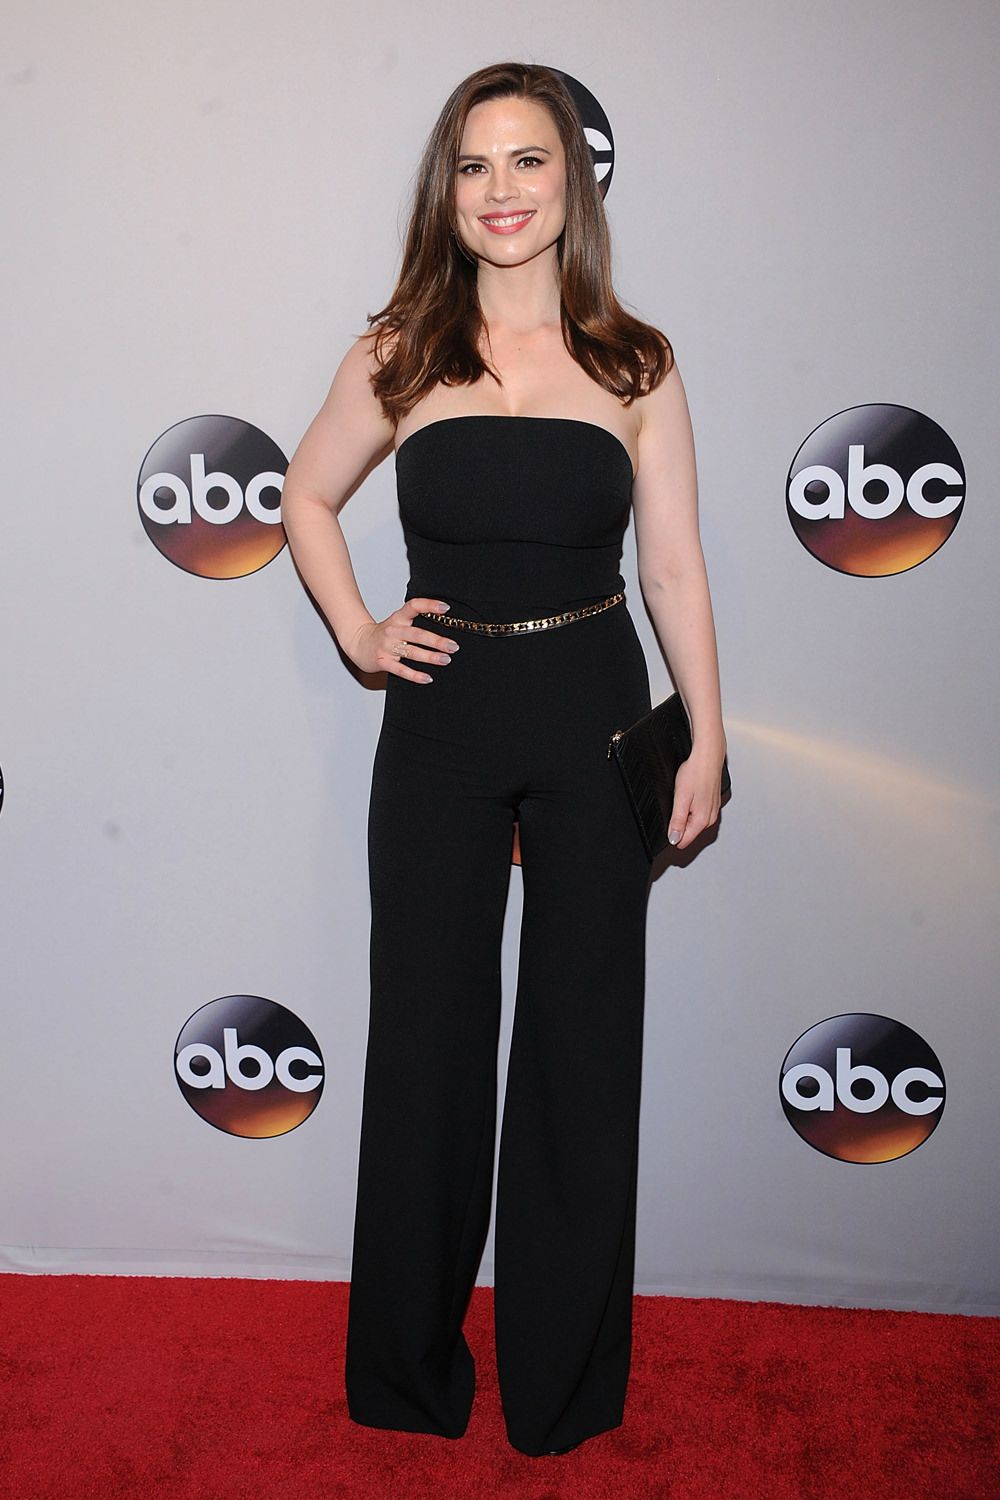 Hayley-Atwell-2016-ABC-Network-Upfront-Red-Carpet-Fashion-Tom ...